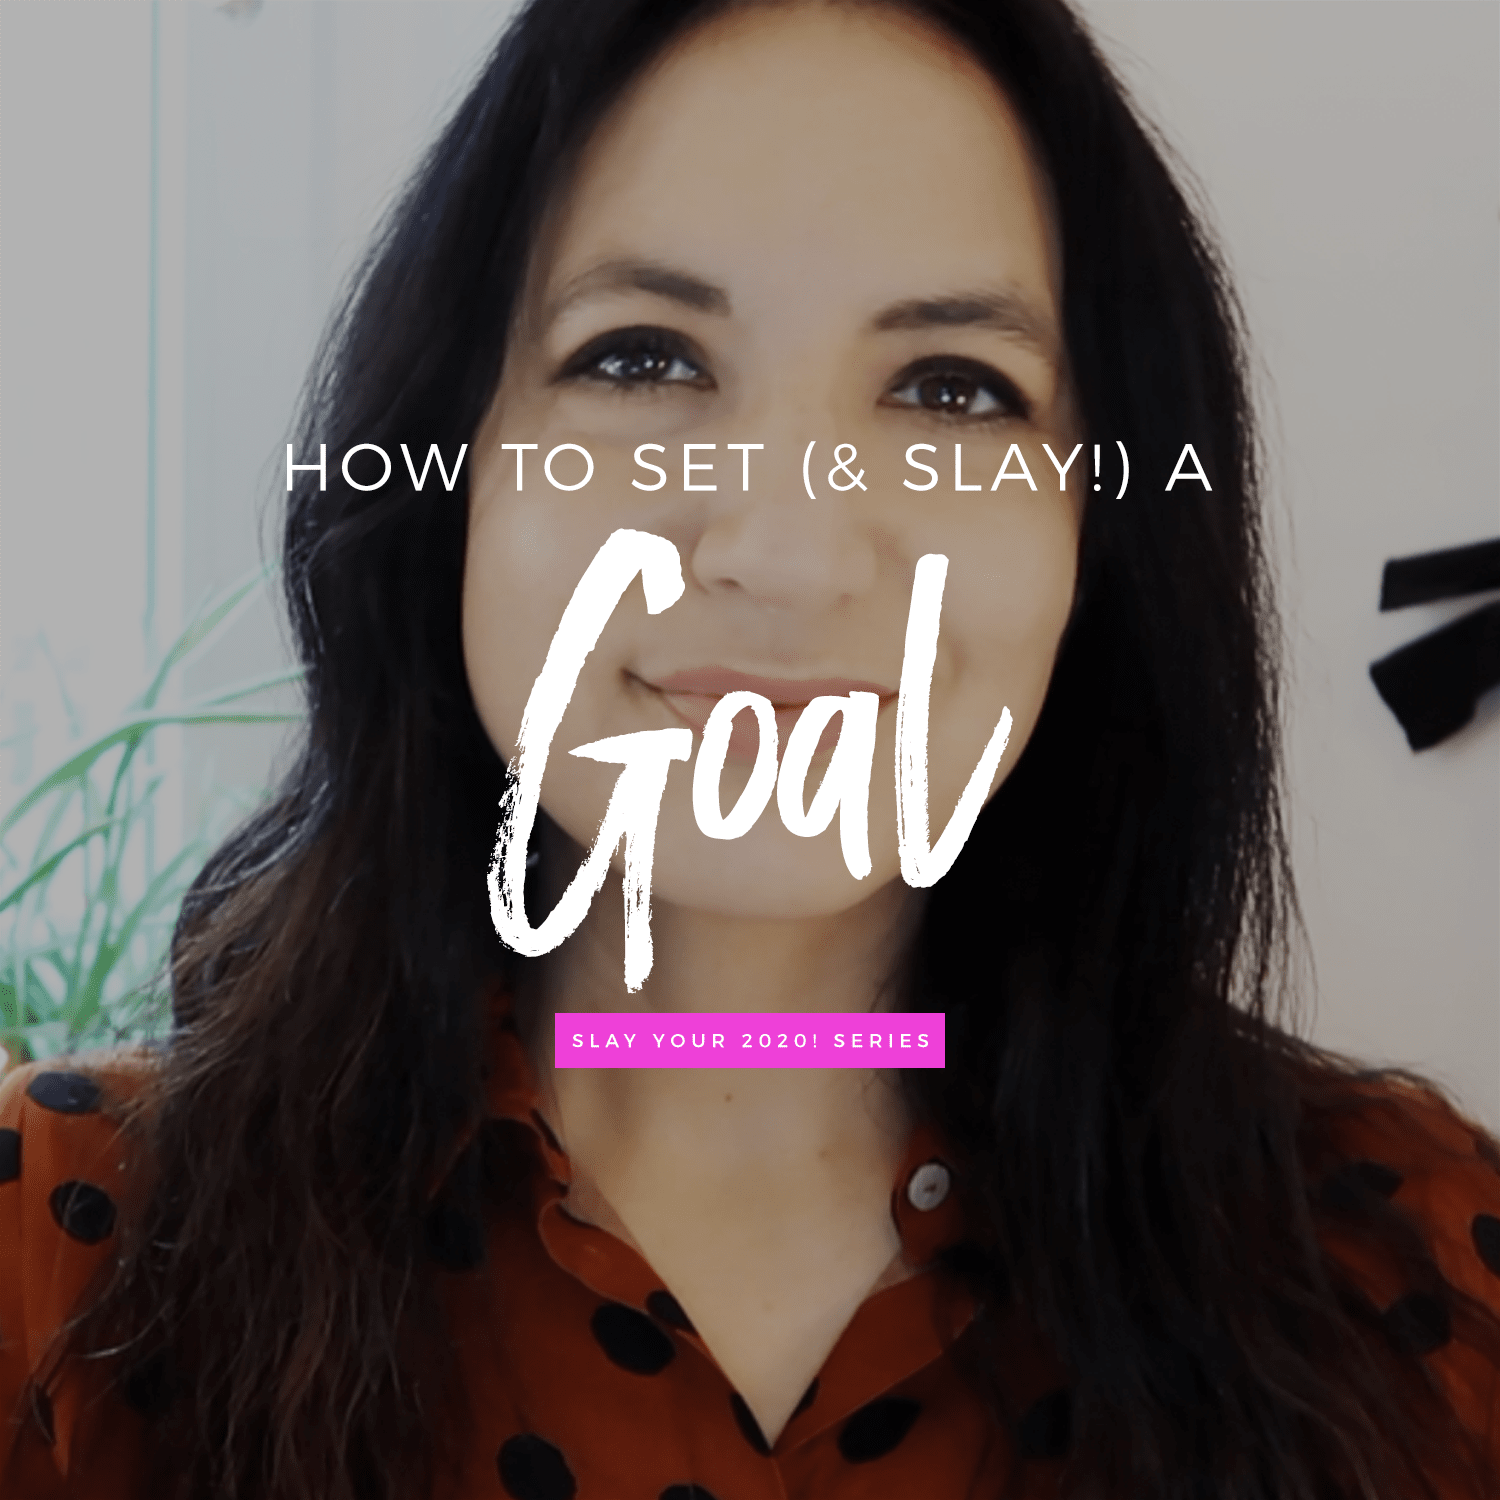 How To Set & Slay Your Goals | Slay Your 2020 Series